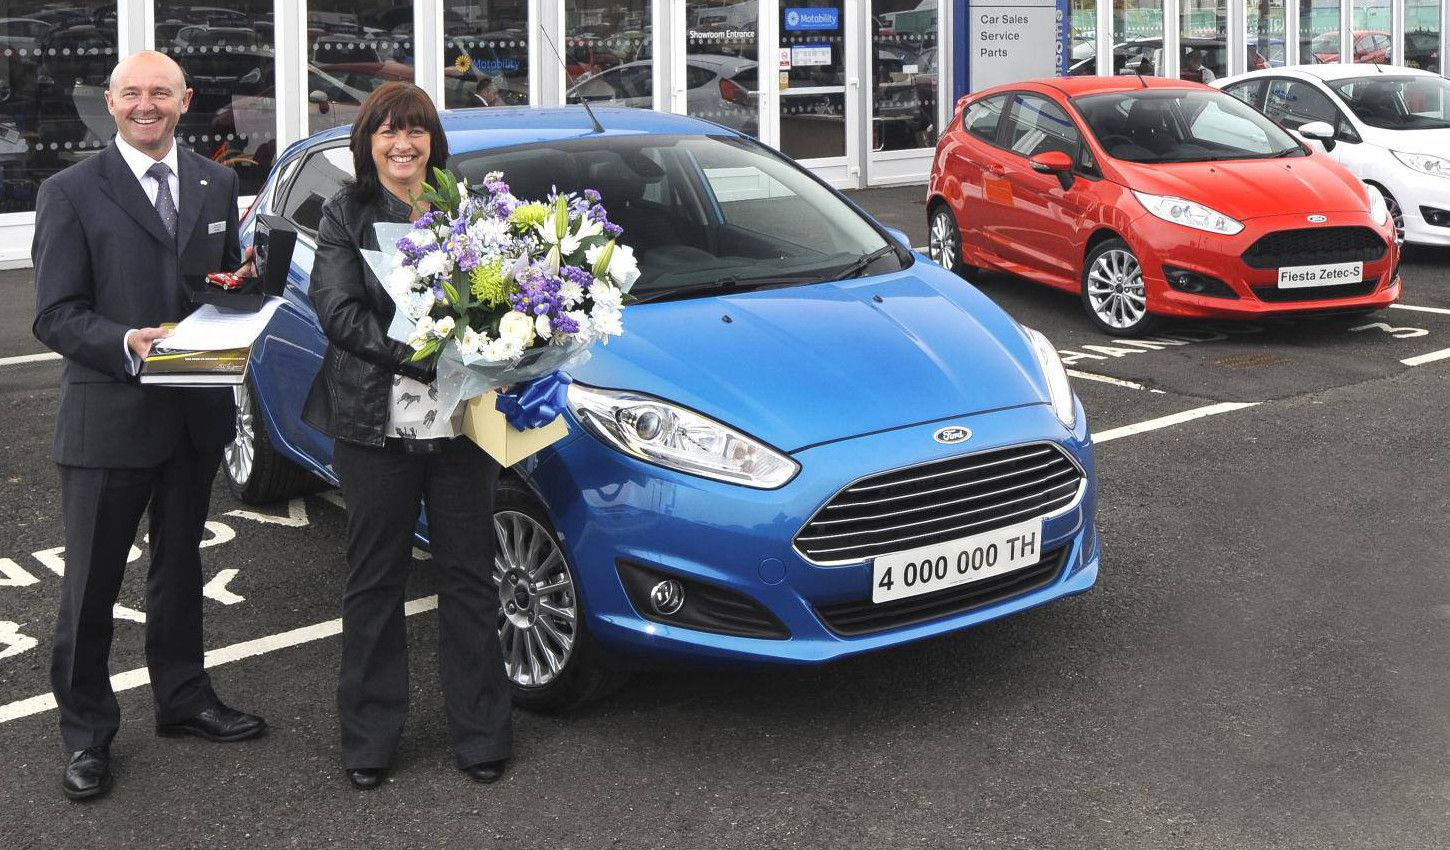 Over Four Million Ford Fiesta S Have Been Sold In The Uk Since The First Fiesta Went On Sale In 1976 The Four Millionth Car A Cand Ford News Ford Ford Fiesta